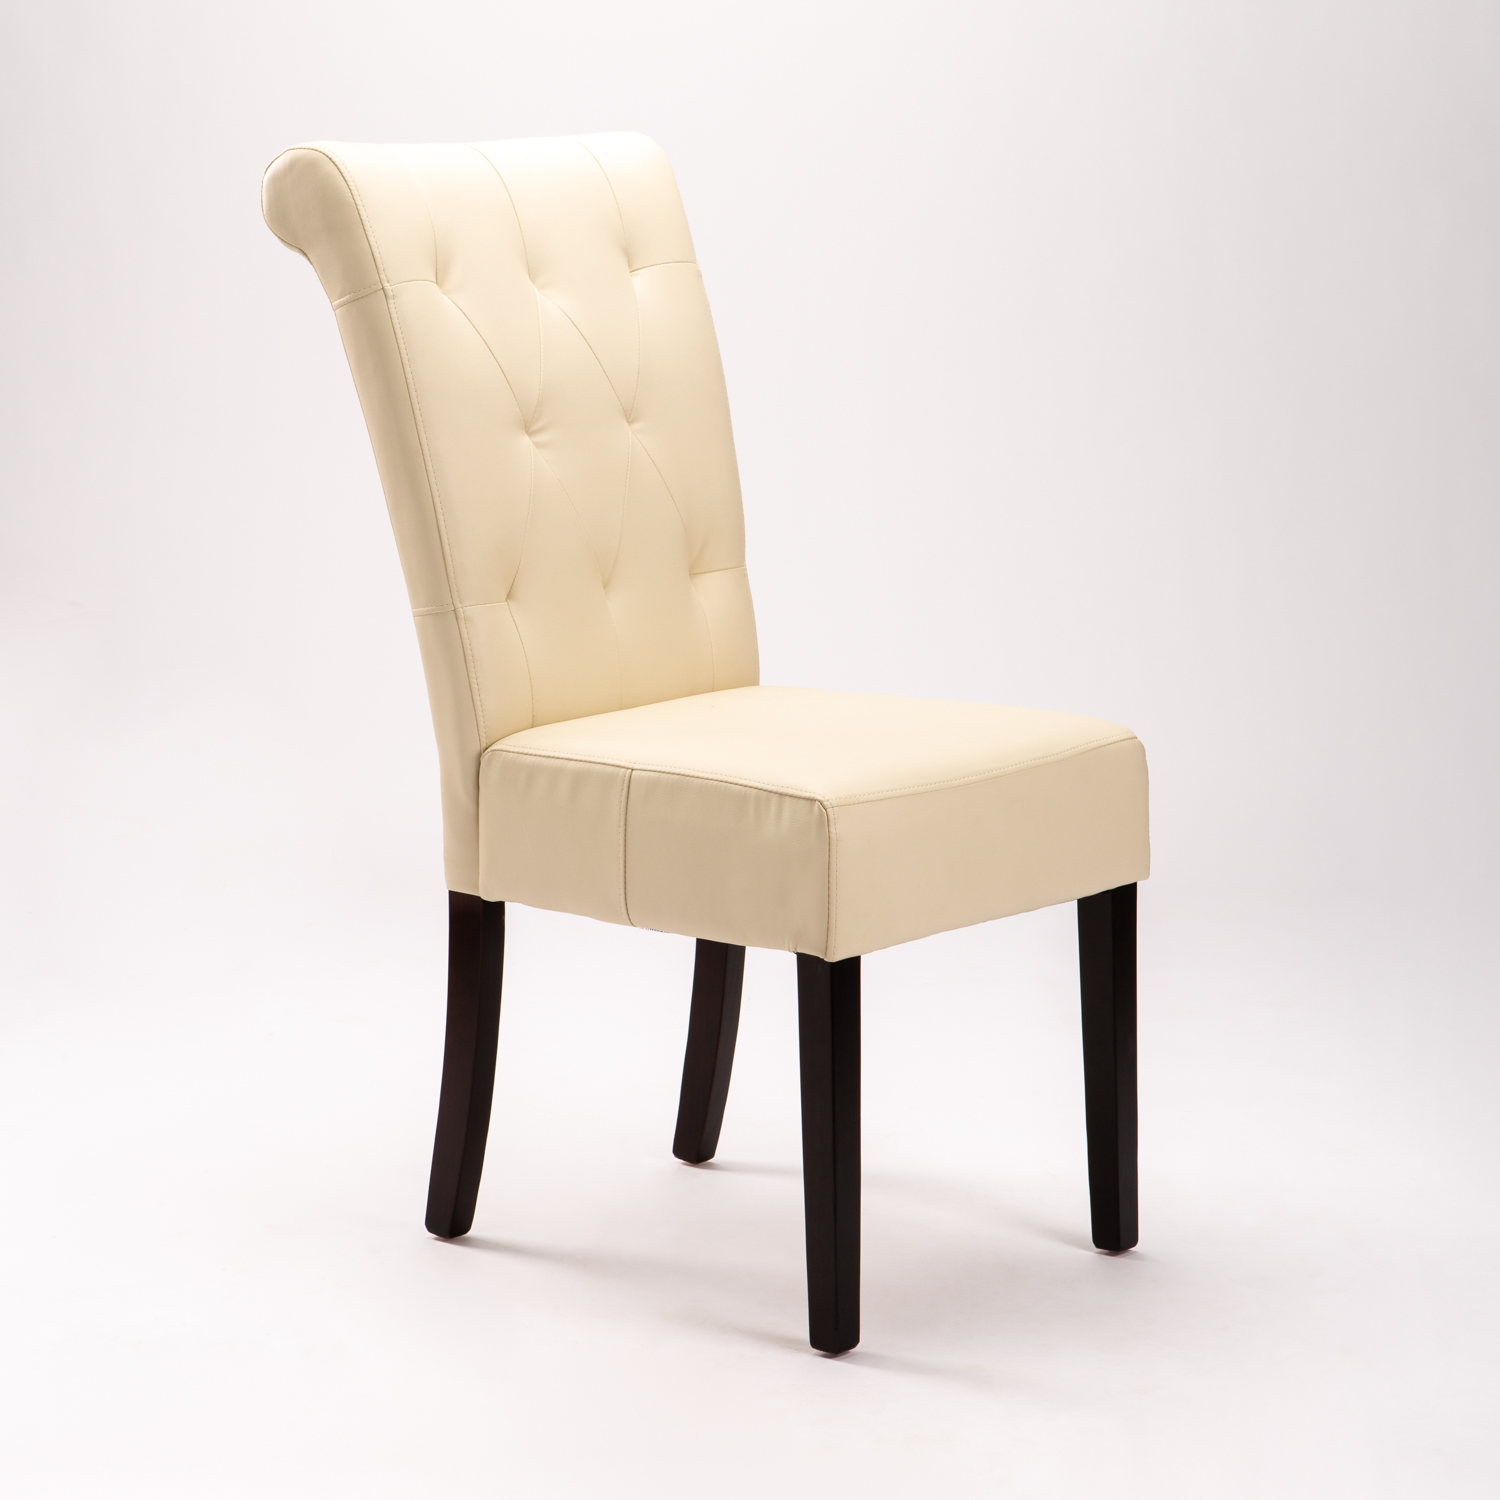 Chesterfield Leather Touch Dining Chair - Cream